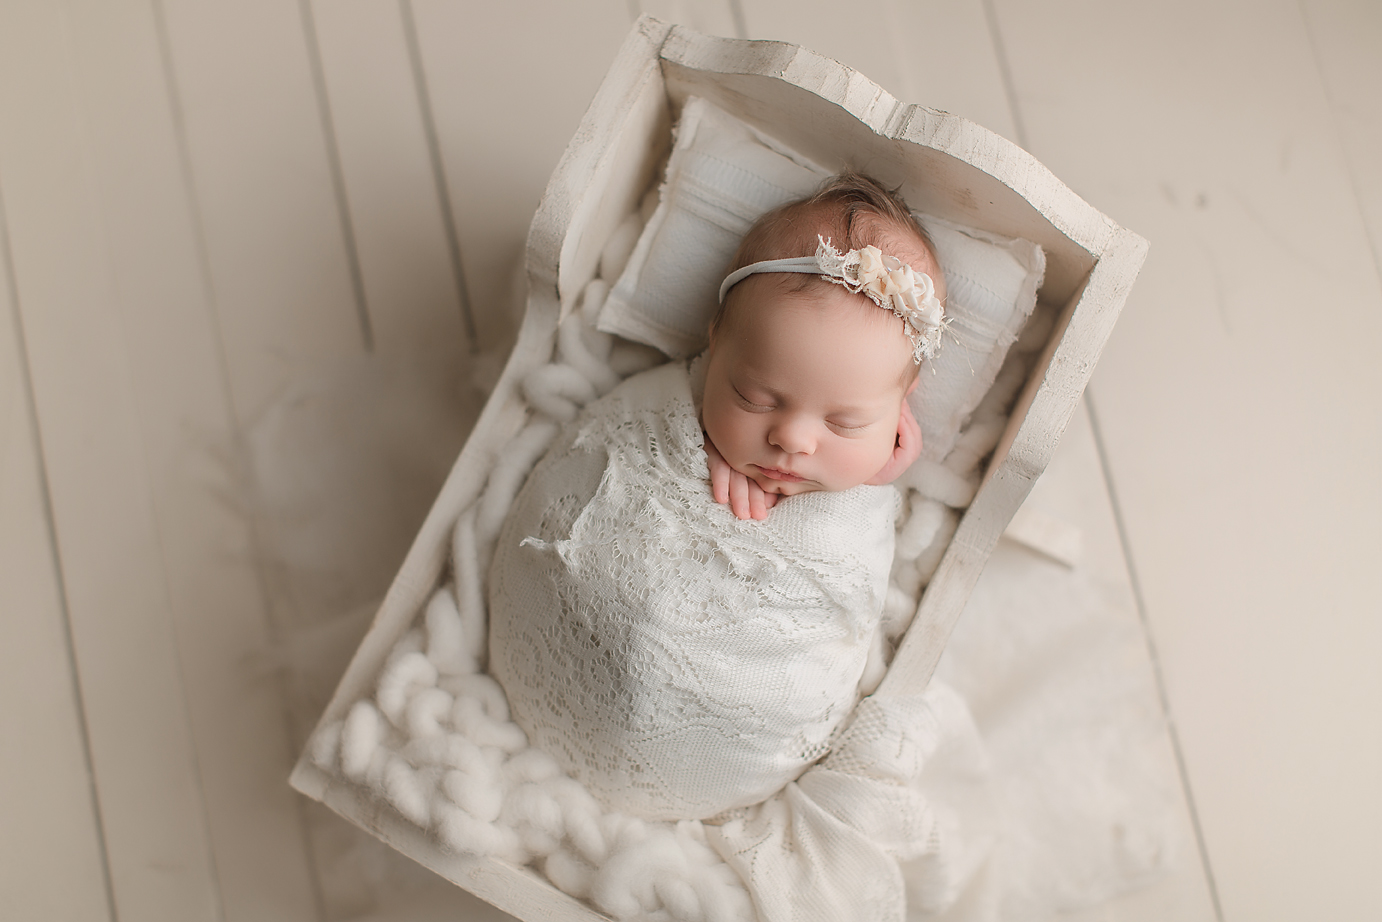 orange-county-newborn-photographer-baby-girl-all-white-cradle-vintage-lace-beautiful.jpg